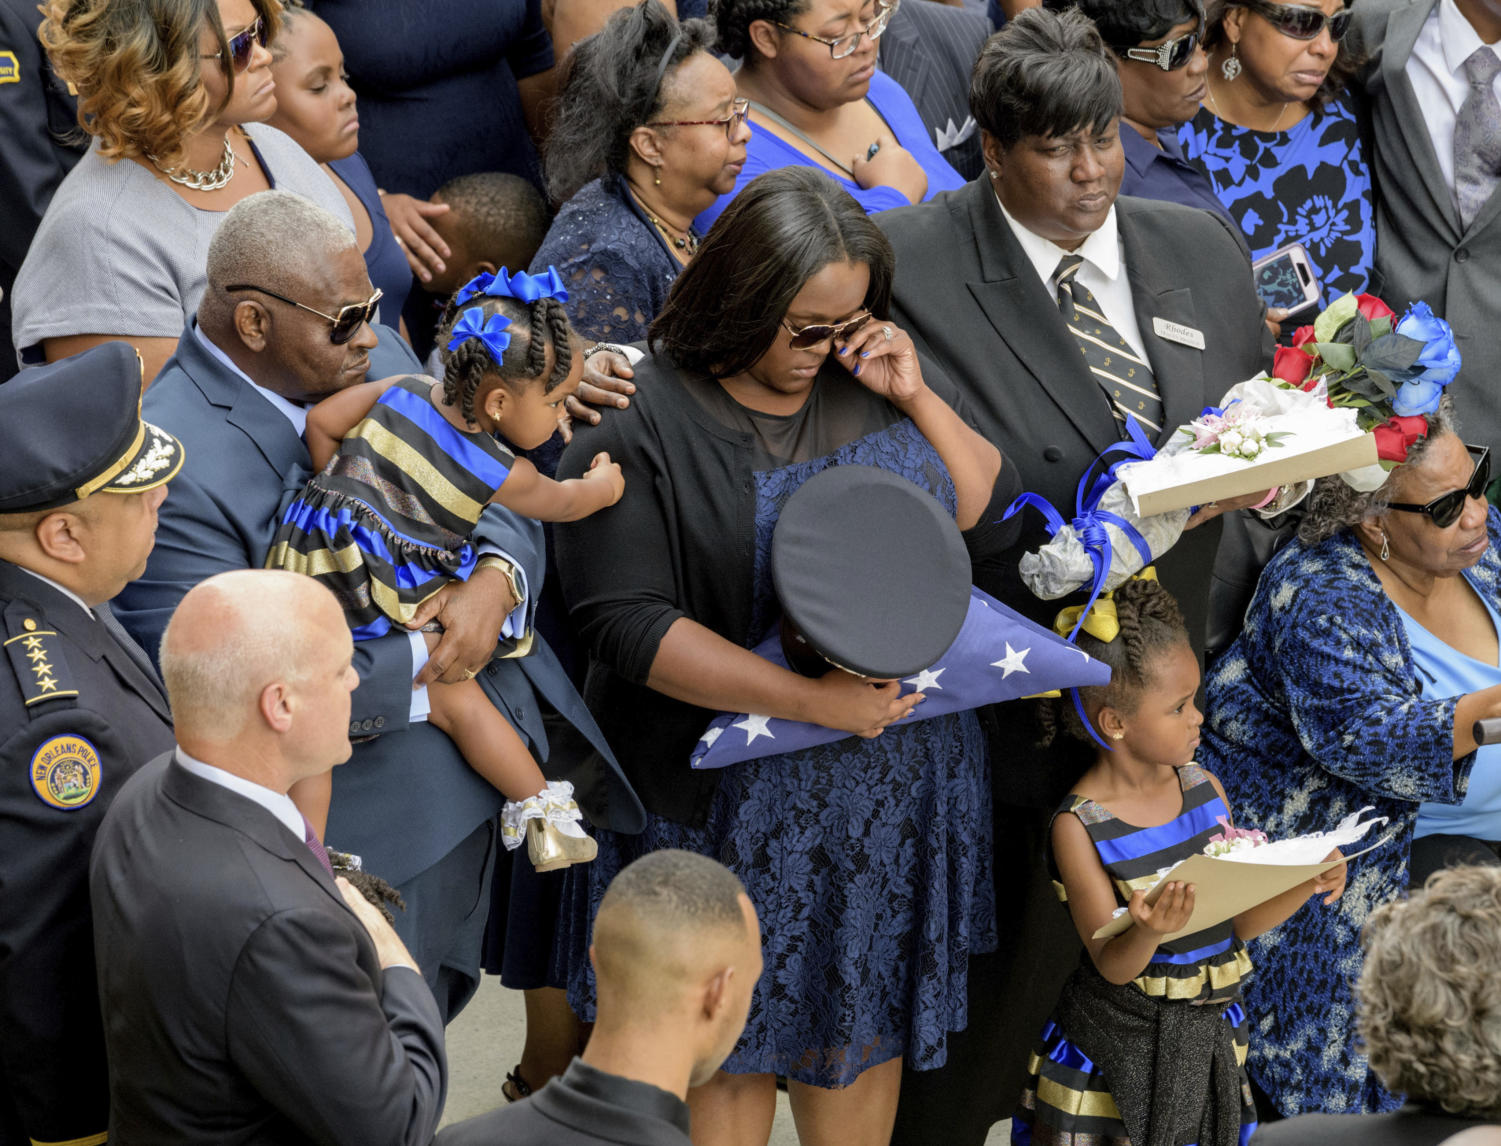 Brittiny McNeil holds the hat and flag of her late husband New Orleans Police Officer Marcus McNeil while she is comforted by her daughter Camille McNeil, 2, left, next to her other daughter, Maisie McNeil, 5, bottom right, and McNeil's mother Kimberly McNeil, top right, and his grandmother Alvena McNeil at Mount Olivet Cemetery during his funeral in New Orleans, La., Saturday, Oct. 21, 2017. New Orleans Police Department Superintendent Michael Harrison, left, and Mayor Mitch Landrieu, second left, stand with hands over their hearts. McNeil, 29, was shot and killed Oct. 13 during a routine patrol. (Matthew Hinton/The Advocate via AP) Photo credit: Associated Press